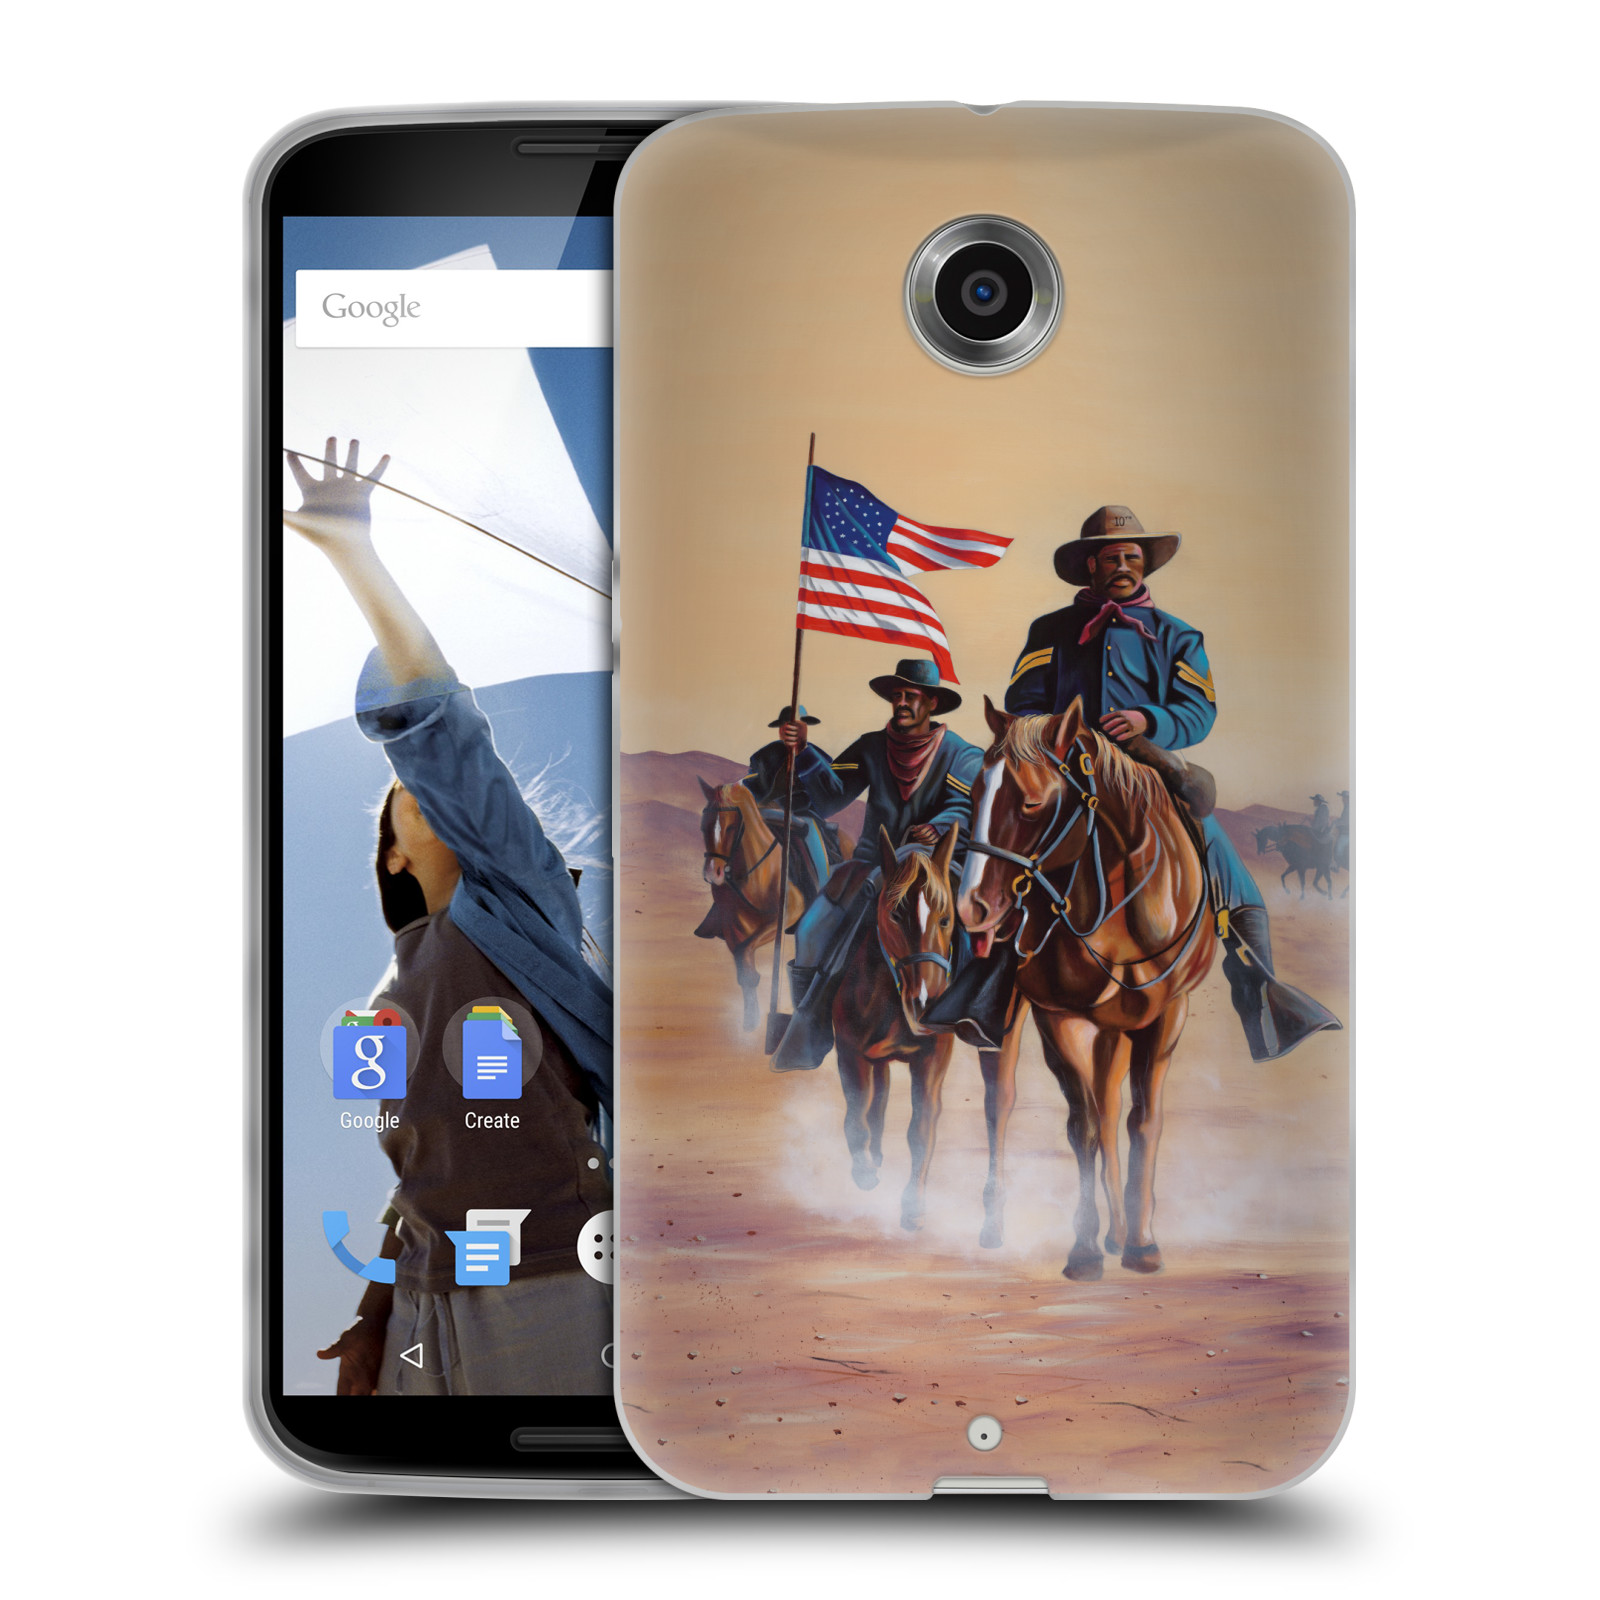 OFFICIAL-GENO-PEOPLES-ART-LIFE-SOFT-GEL-CASE-FOR-MOTOROLA-PHONES